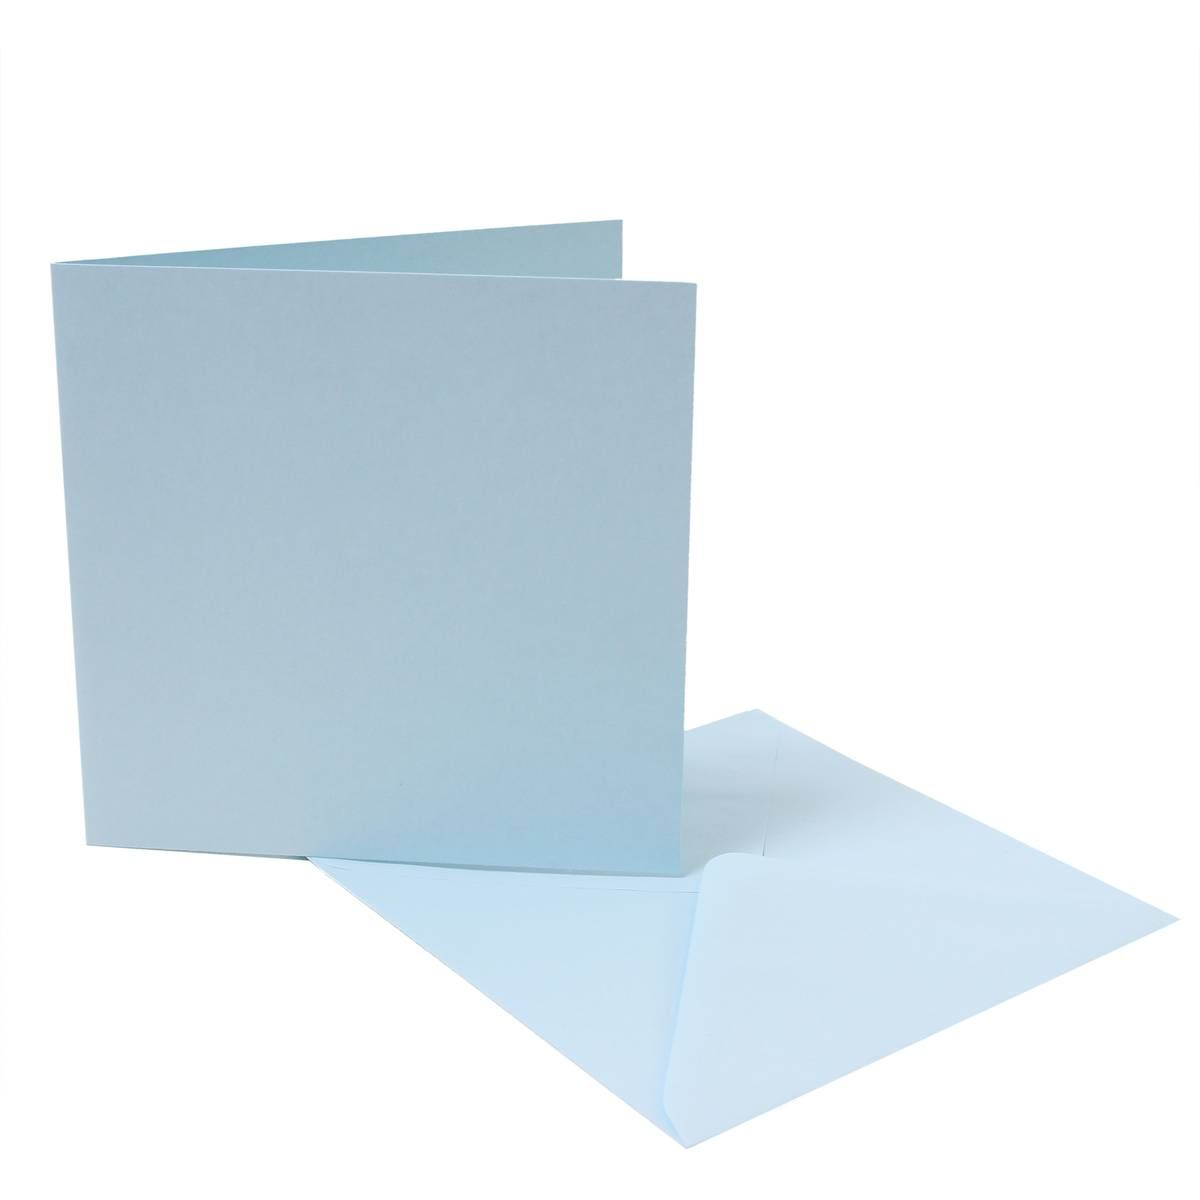 6x6 Cards Double Sided Sticky Tape Cards Craft Supplies